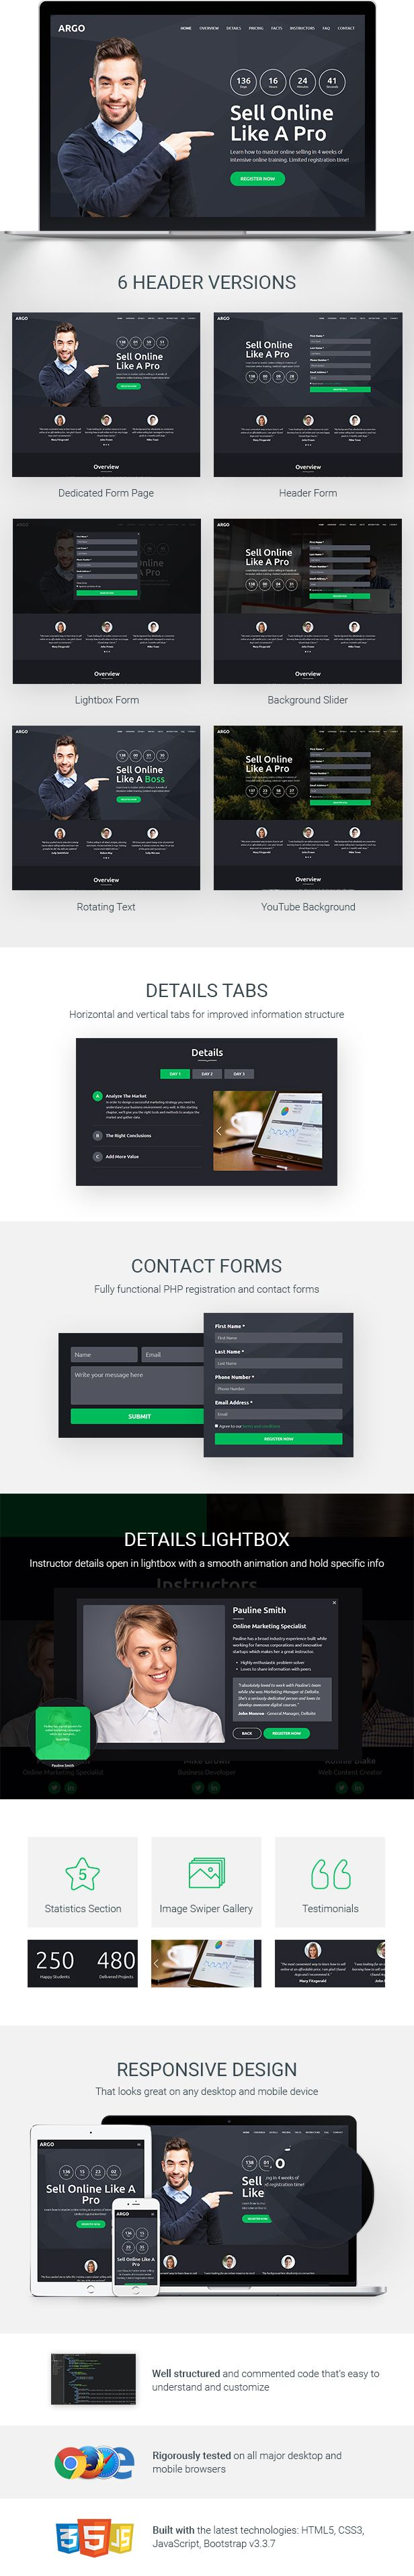 115 best Landing Pages Templates images on Pinterest